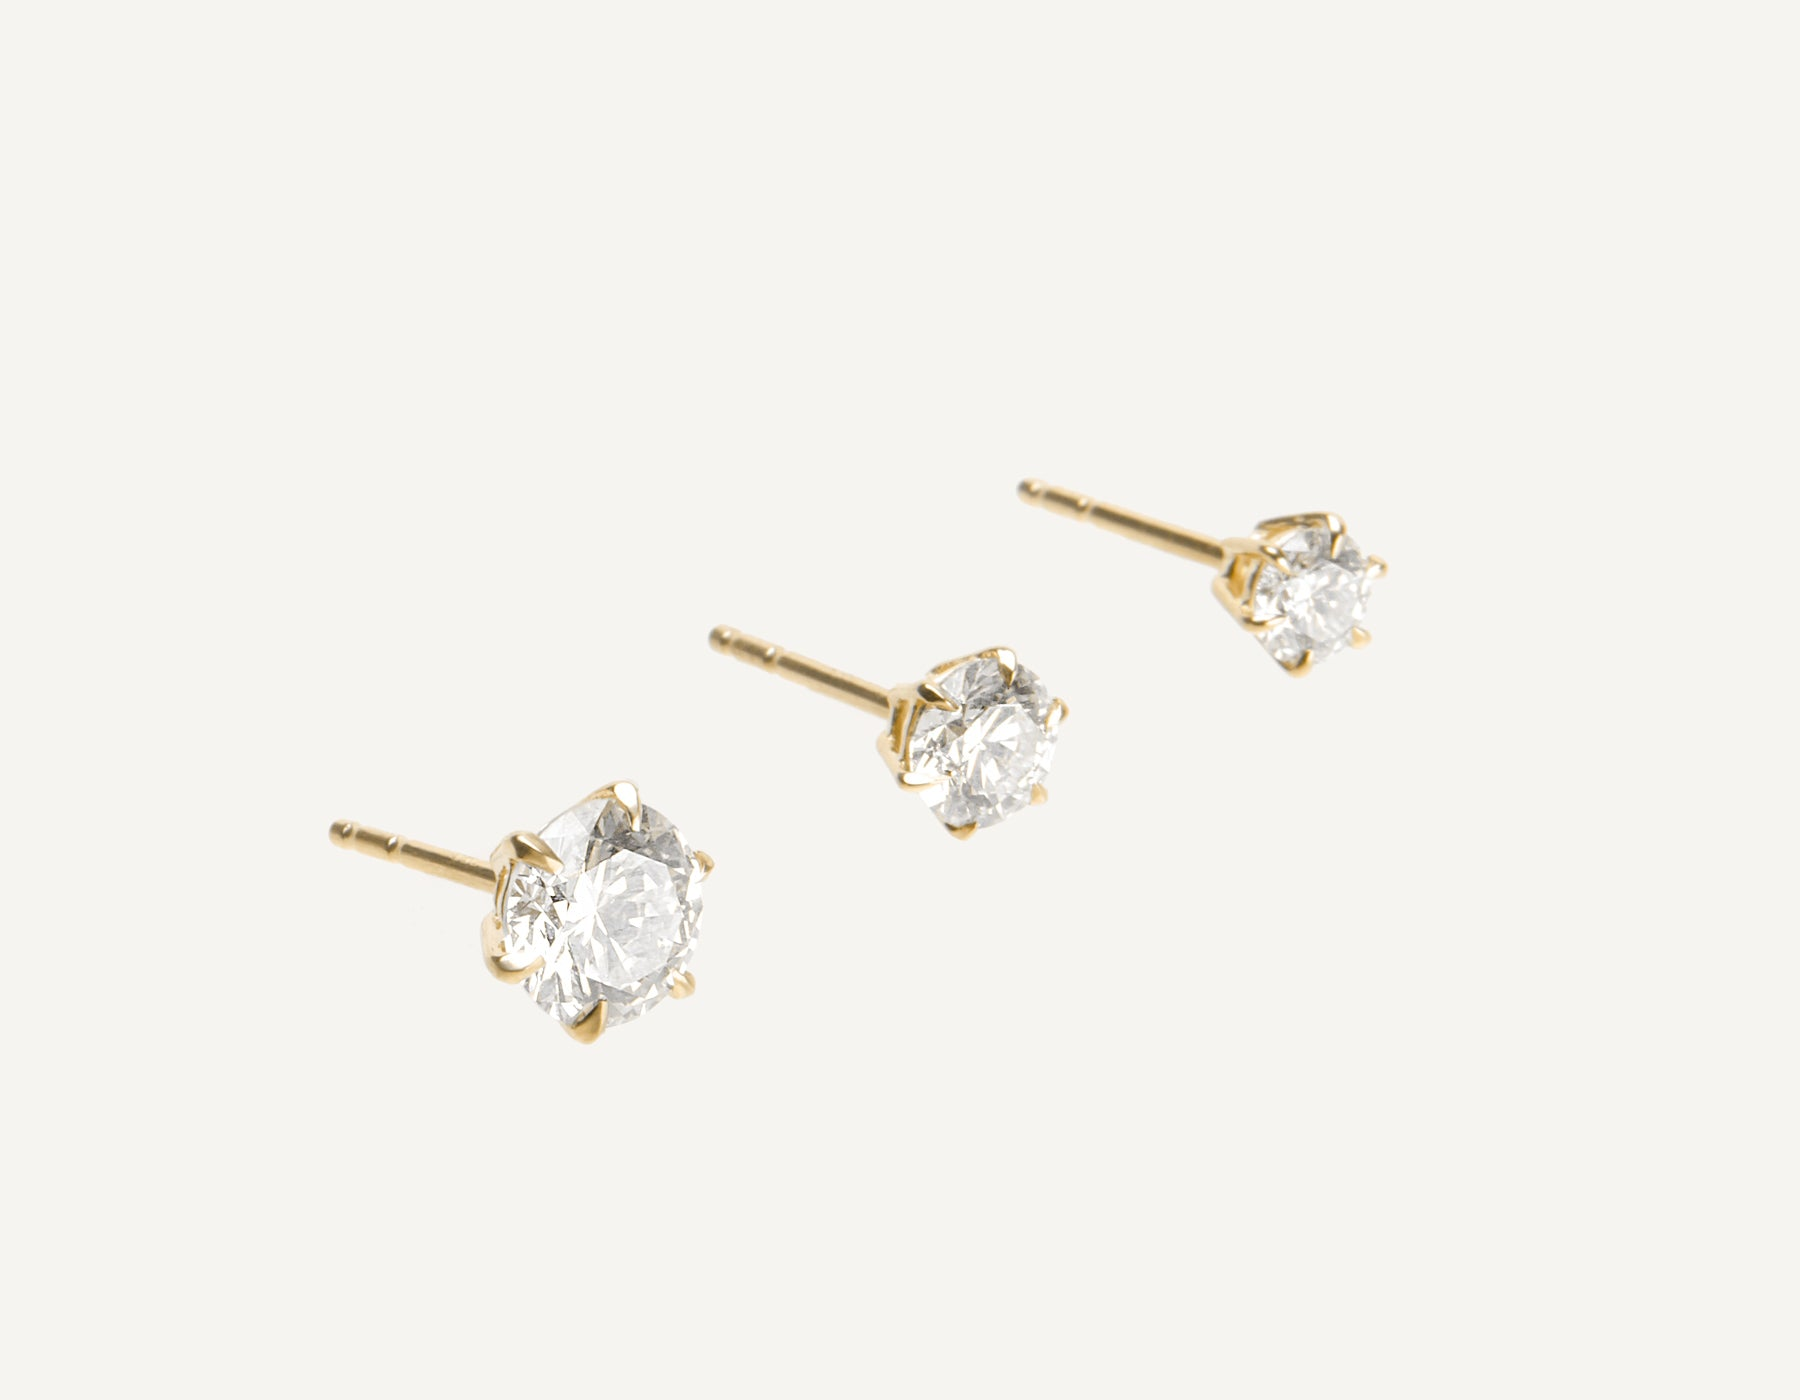 Vrai & Oro 18K Solid Gold Round Brilliant Diamond Earring Post 1 ct .50 ct .25 ct, 18K Yellow Gold